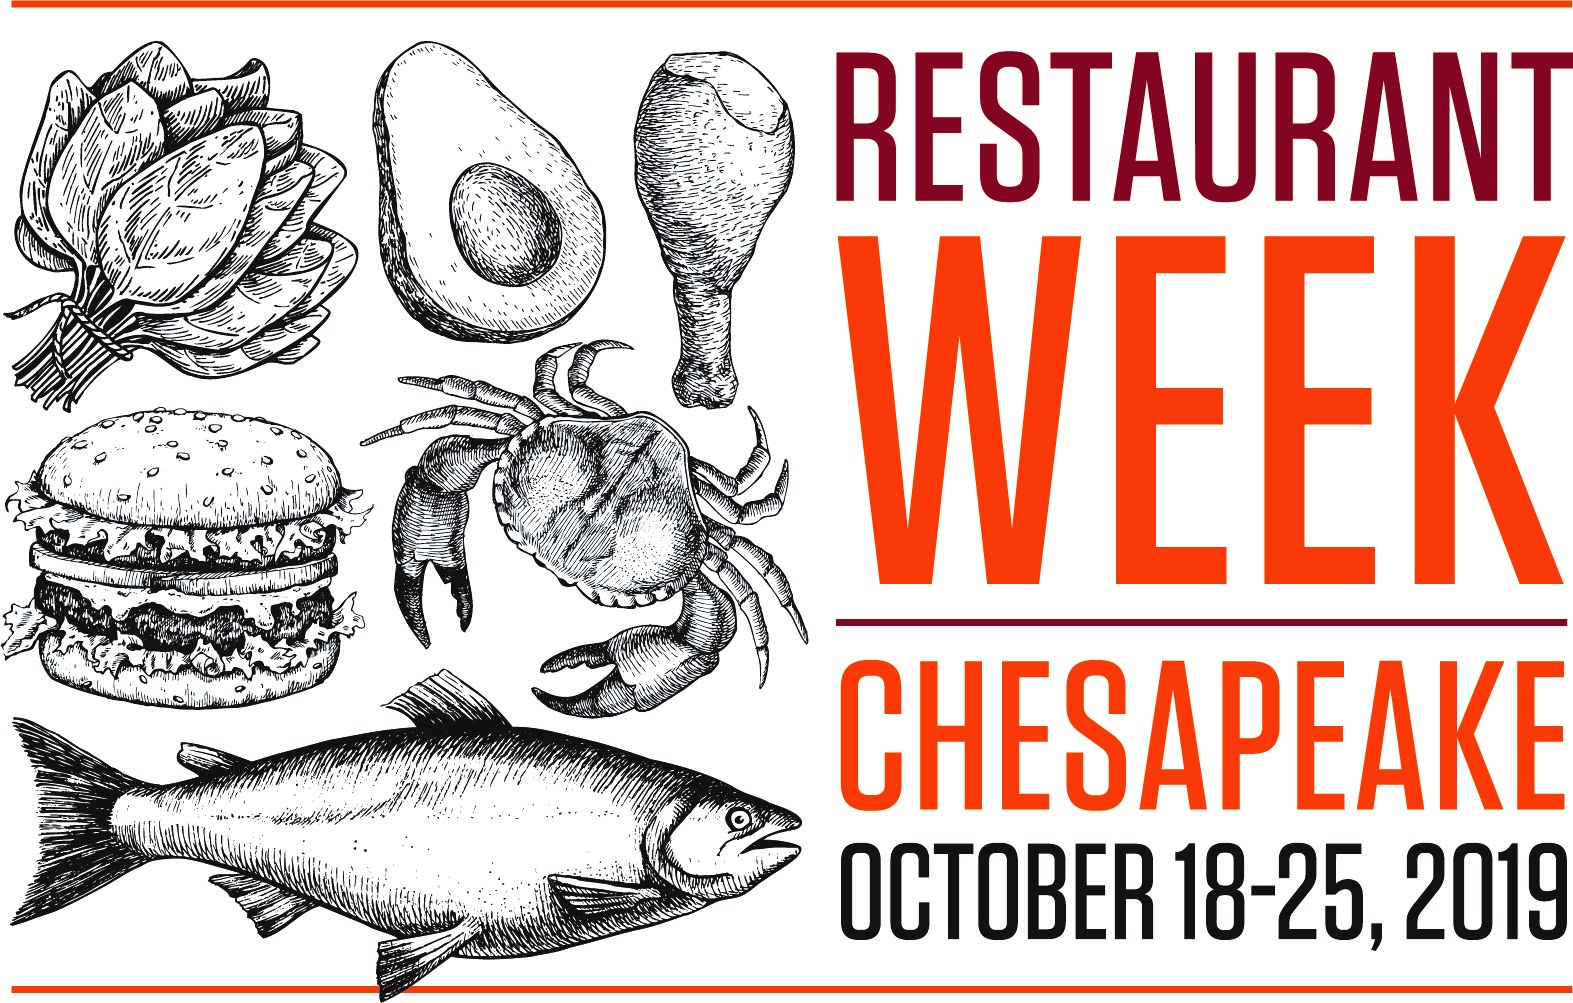 Chesapeake Restaurant Week 2019